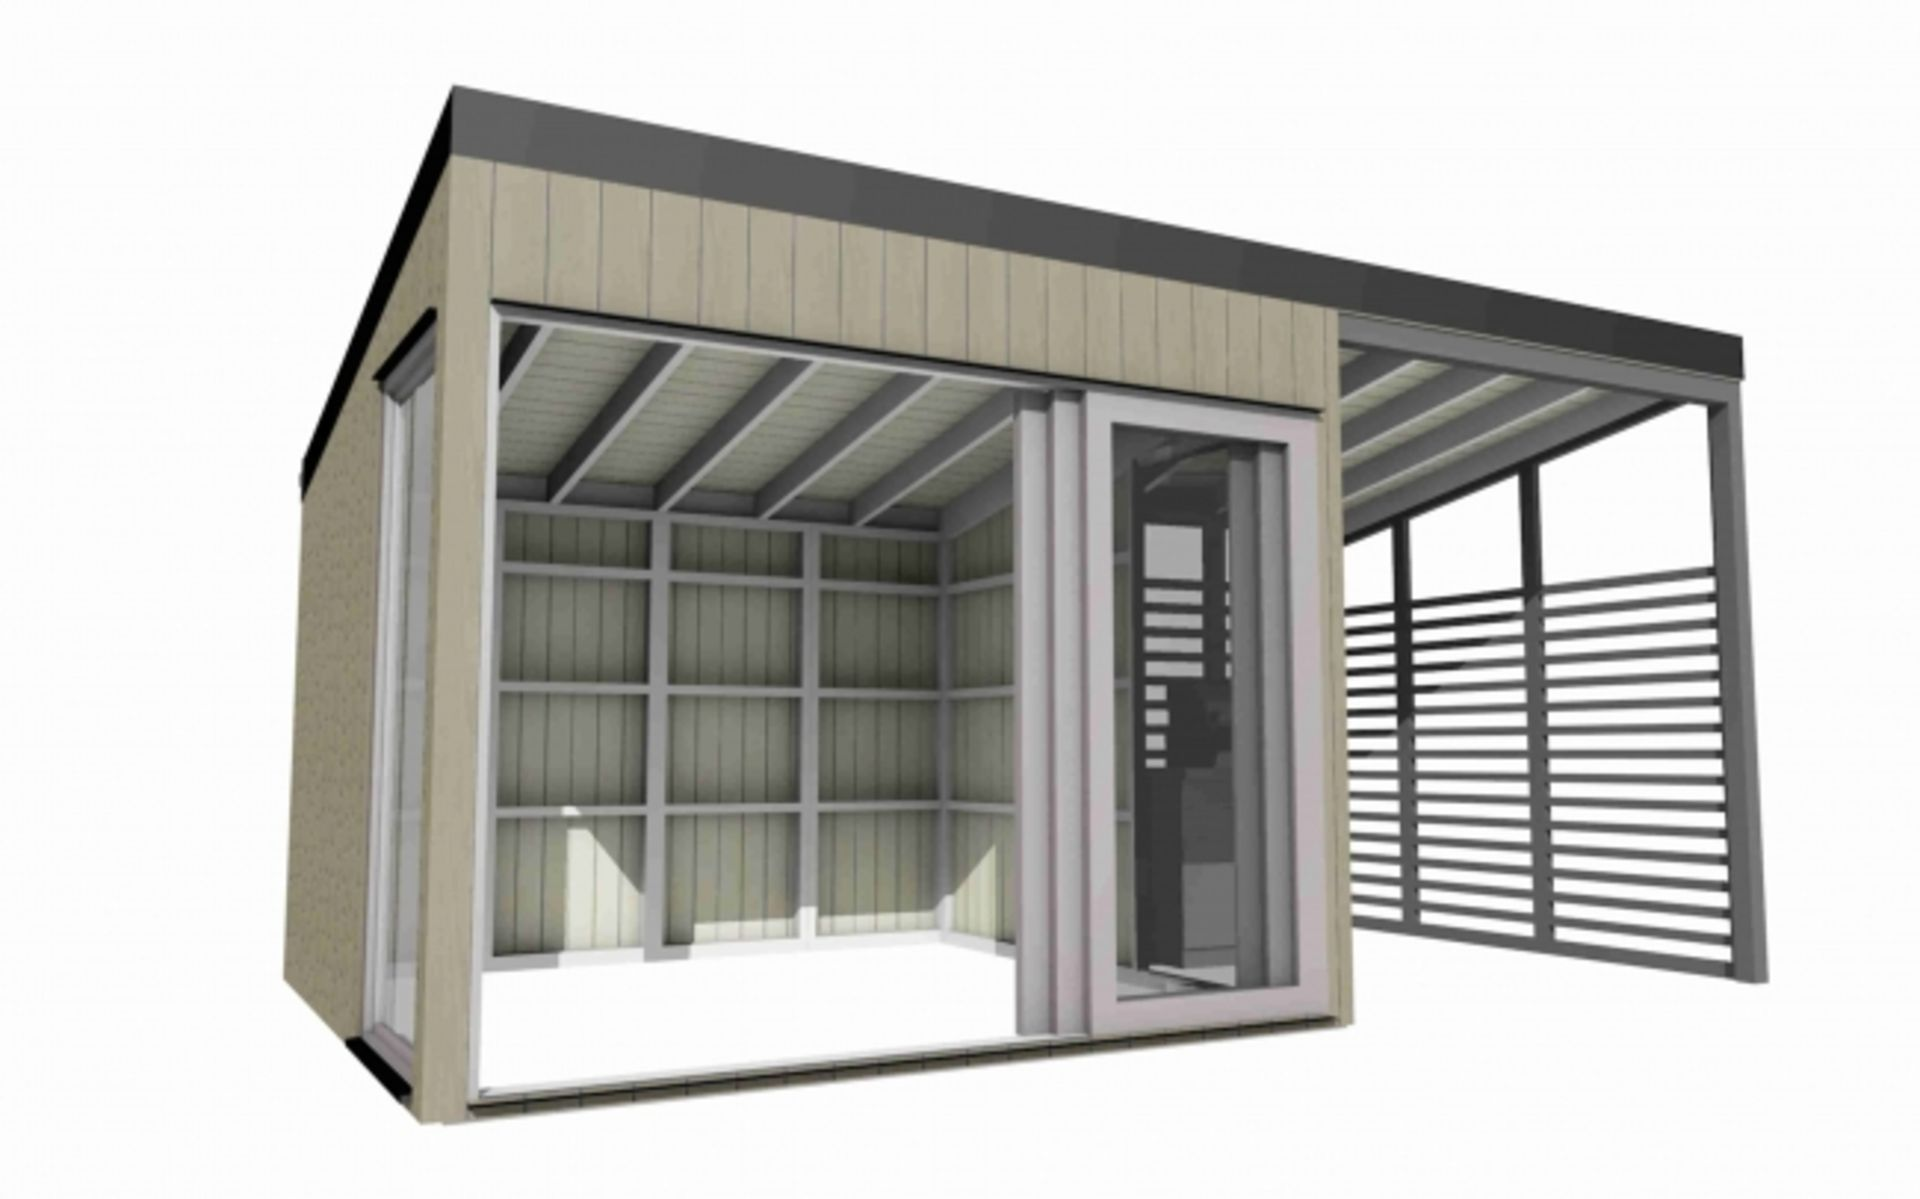 Lot 19028 - + VAT Brand New Superb Spruce 5m x 3m Garden Living Cube With Covered Outdoor Terrace Section -